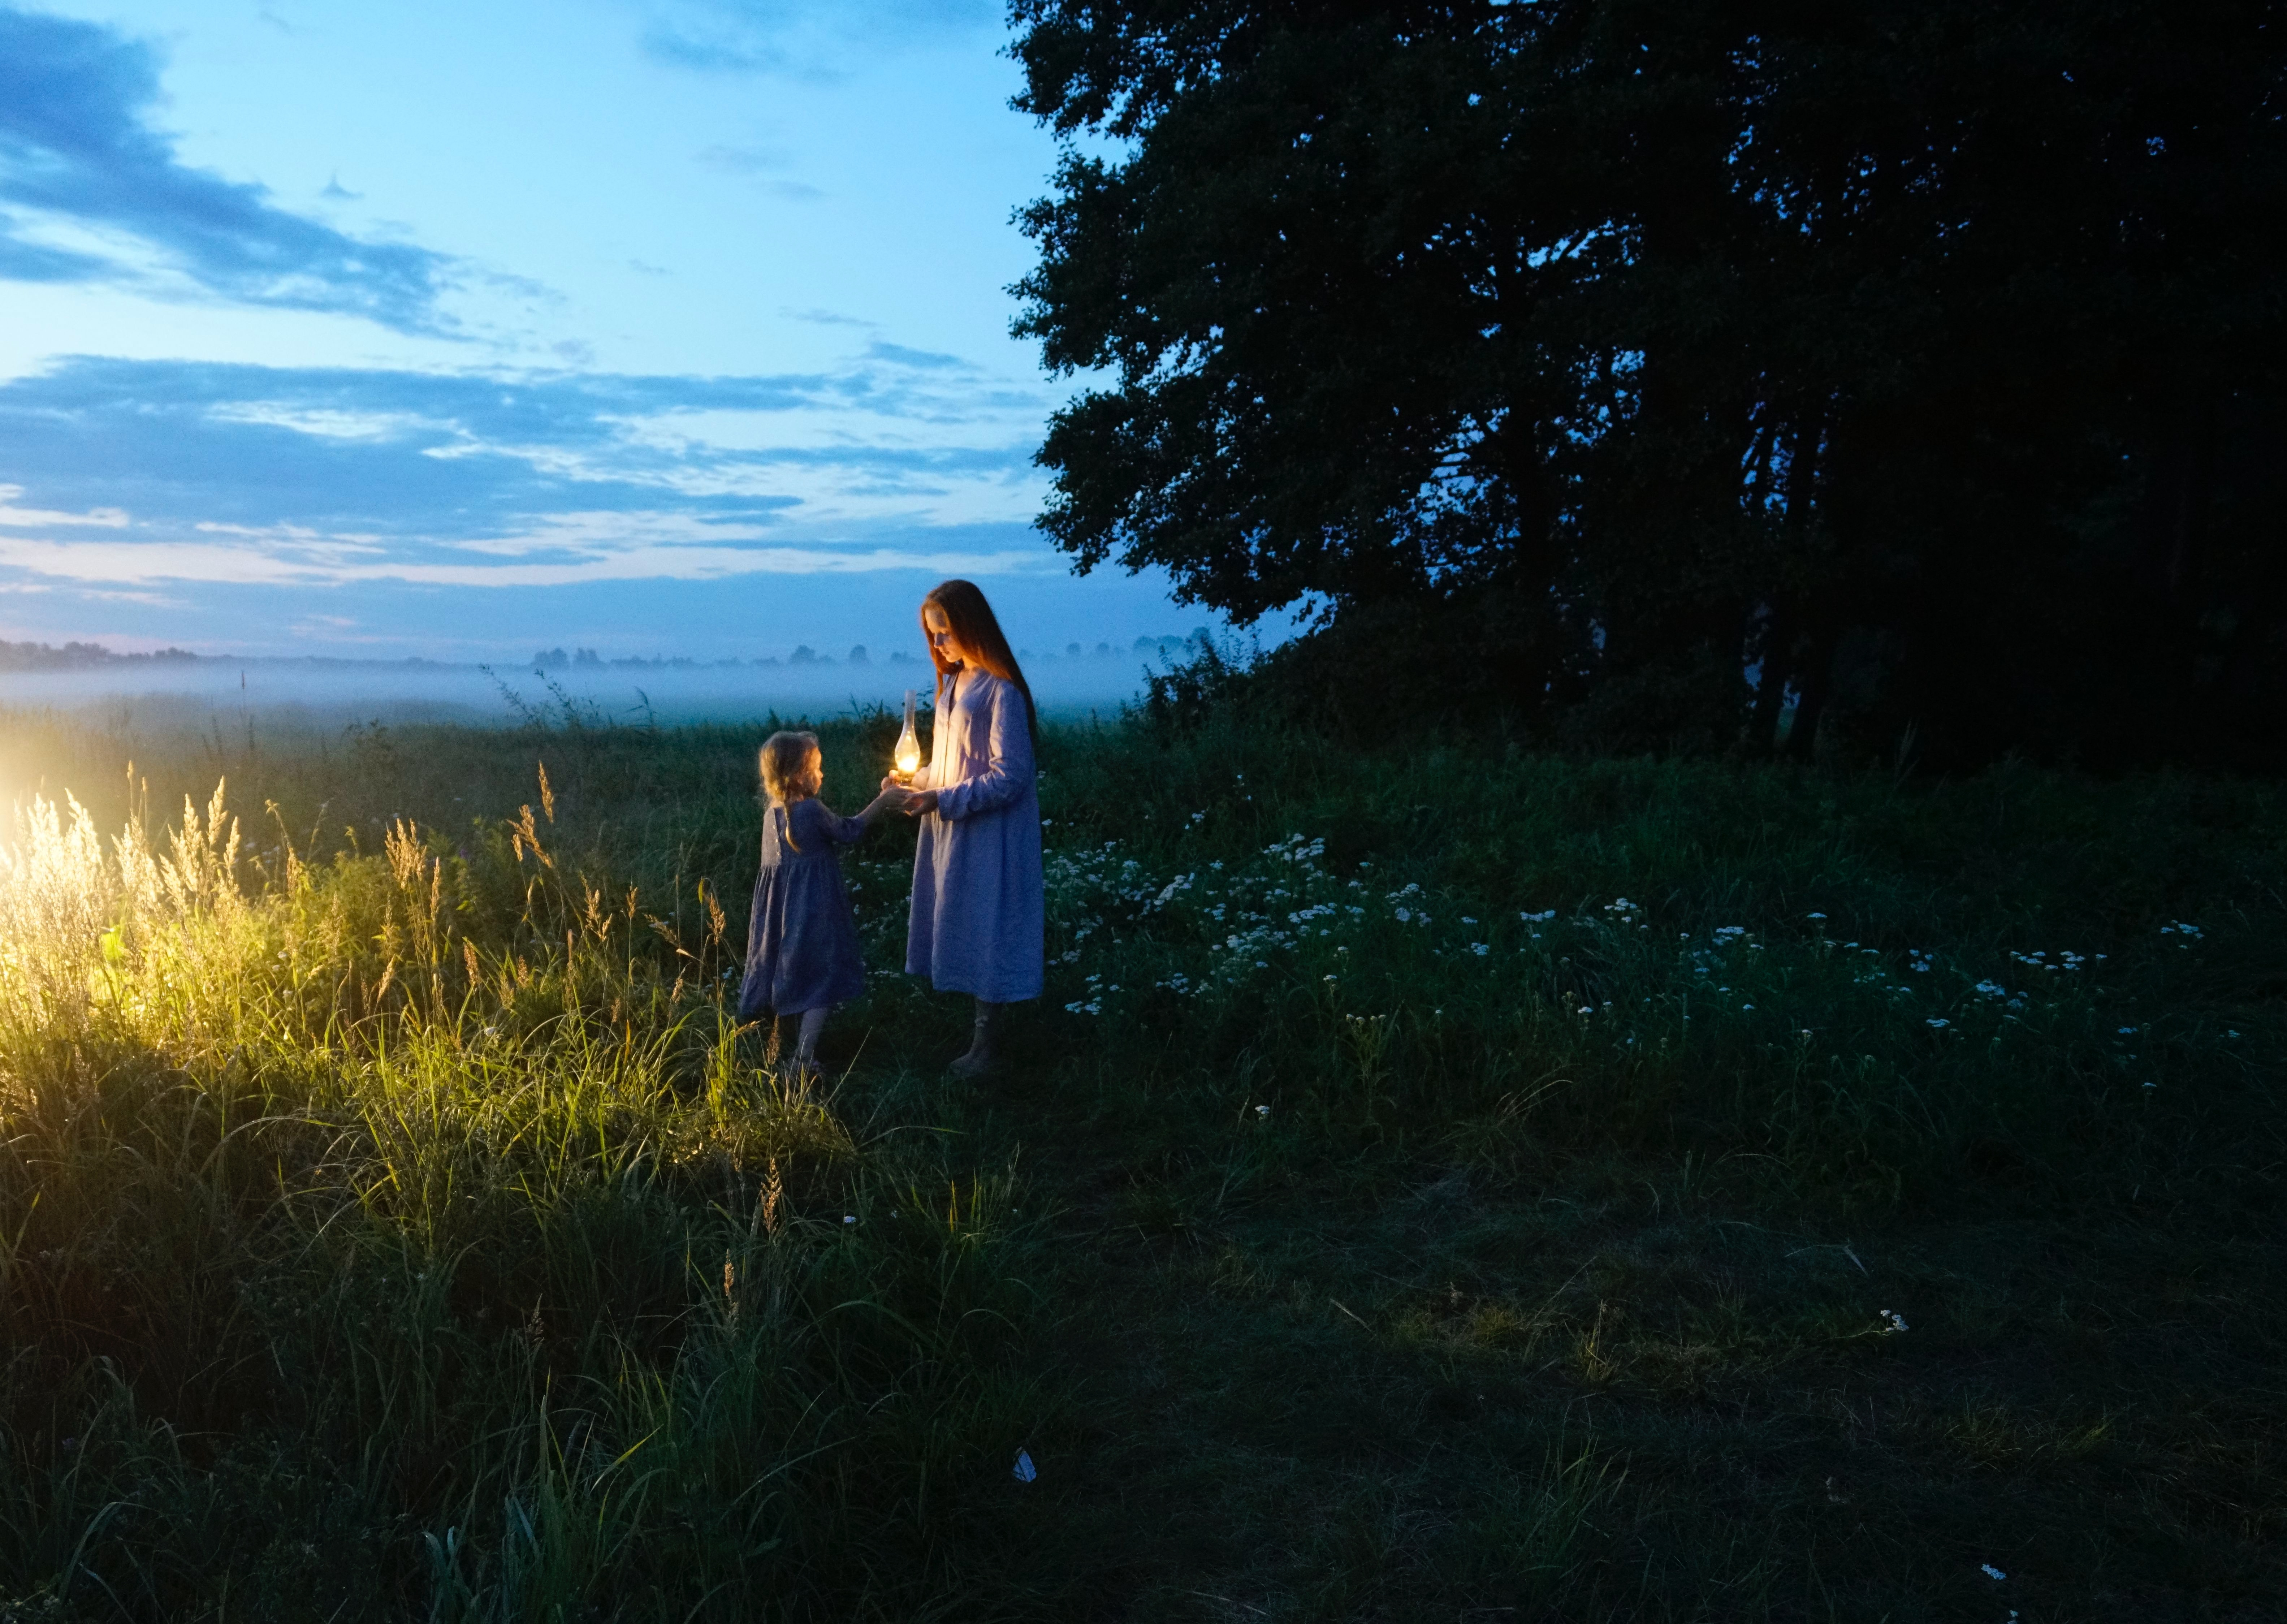 106442 download wallpaper Children, Nature, Sunset, Field, Lamp, Childhood screensavers and pictures for free